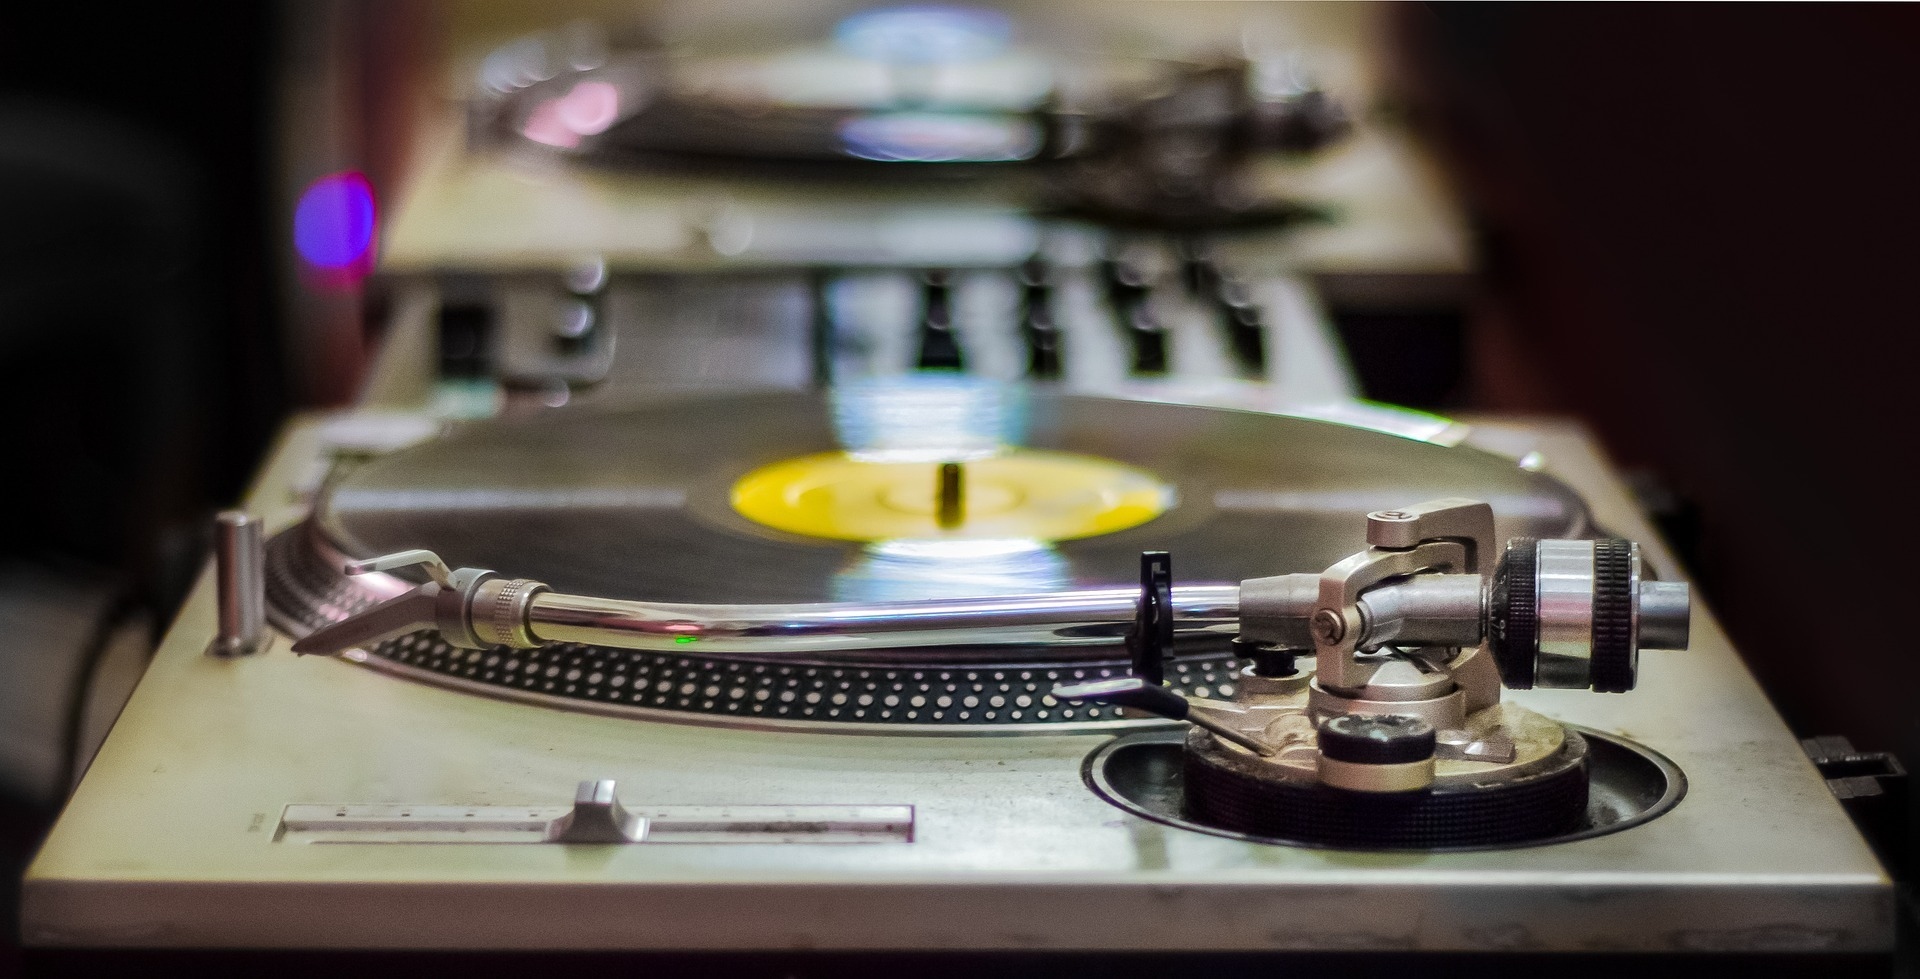 Things to Look For When Selecting a Turntable